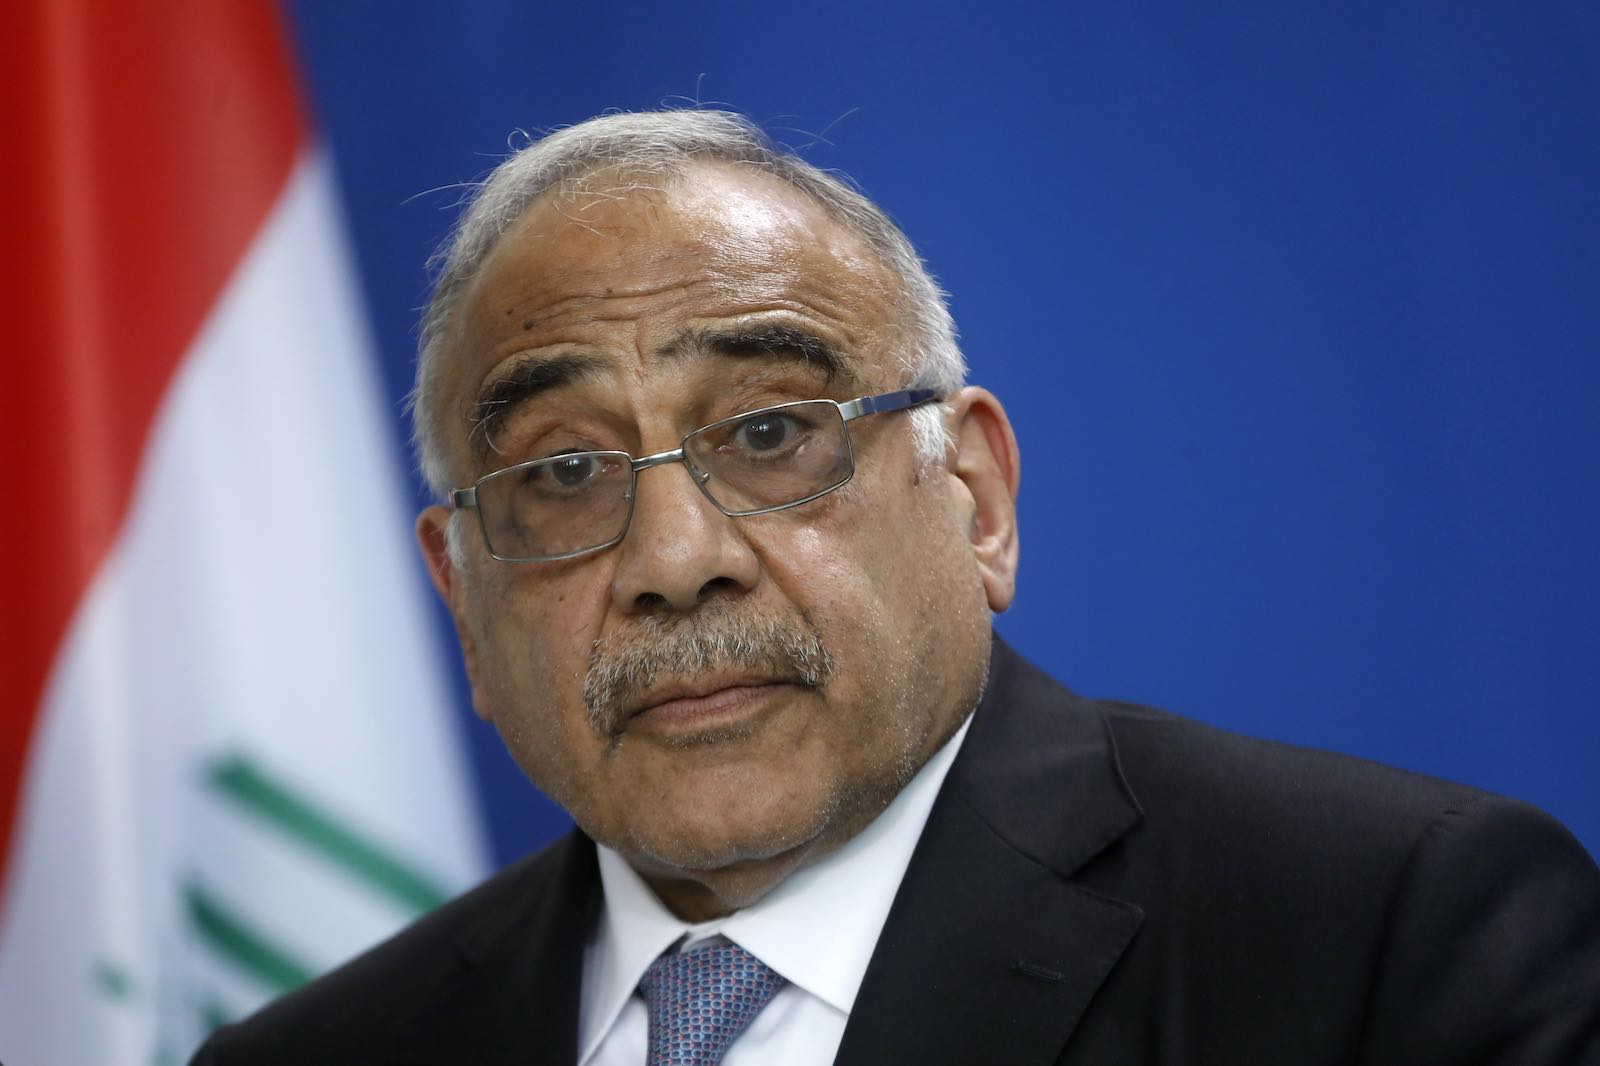 Iraqi Prime Minister Adel Abdul-Mahdi (Photo by Michele Tantussi/Getty Images)